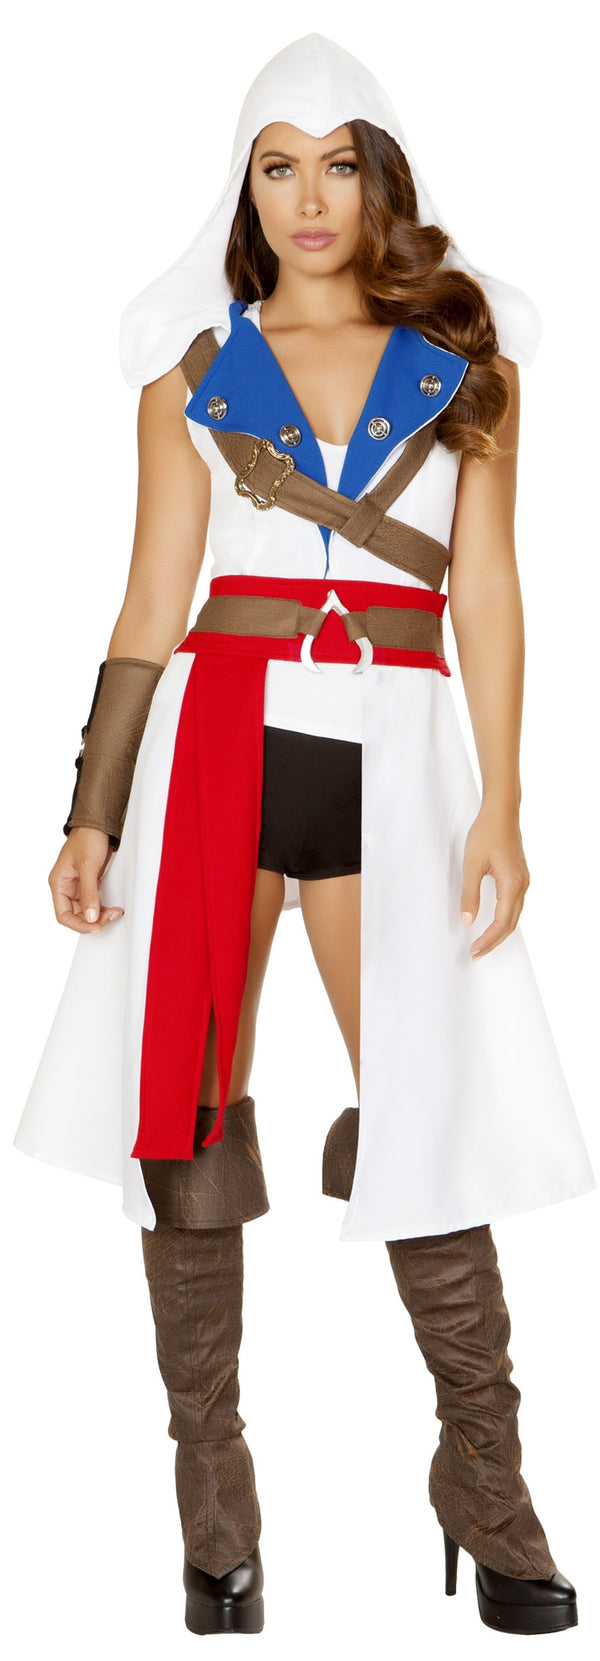 RM-4843 Assassins Protector Costume front